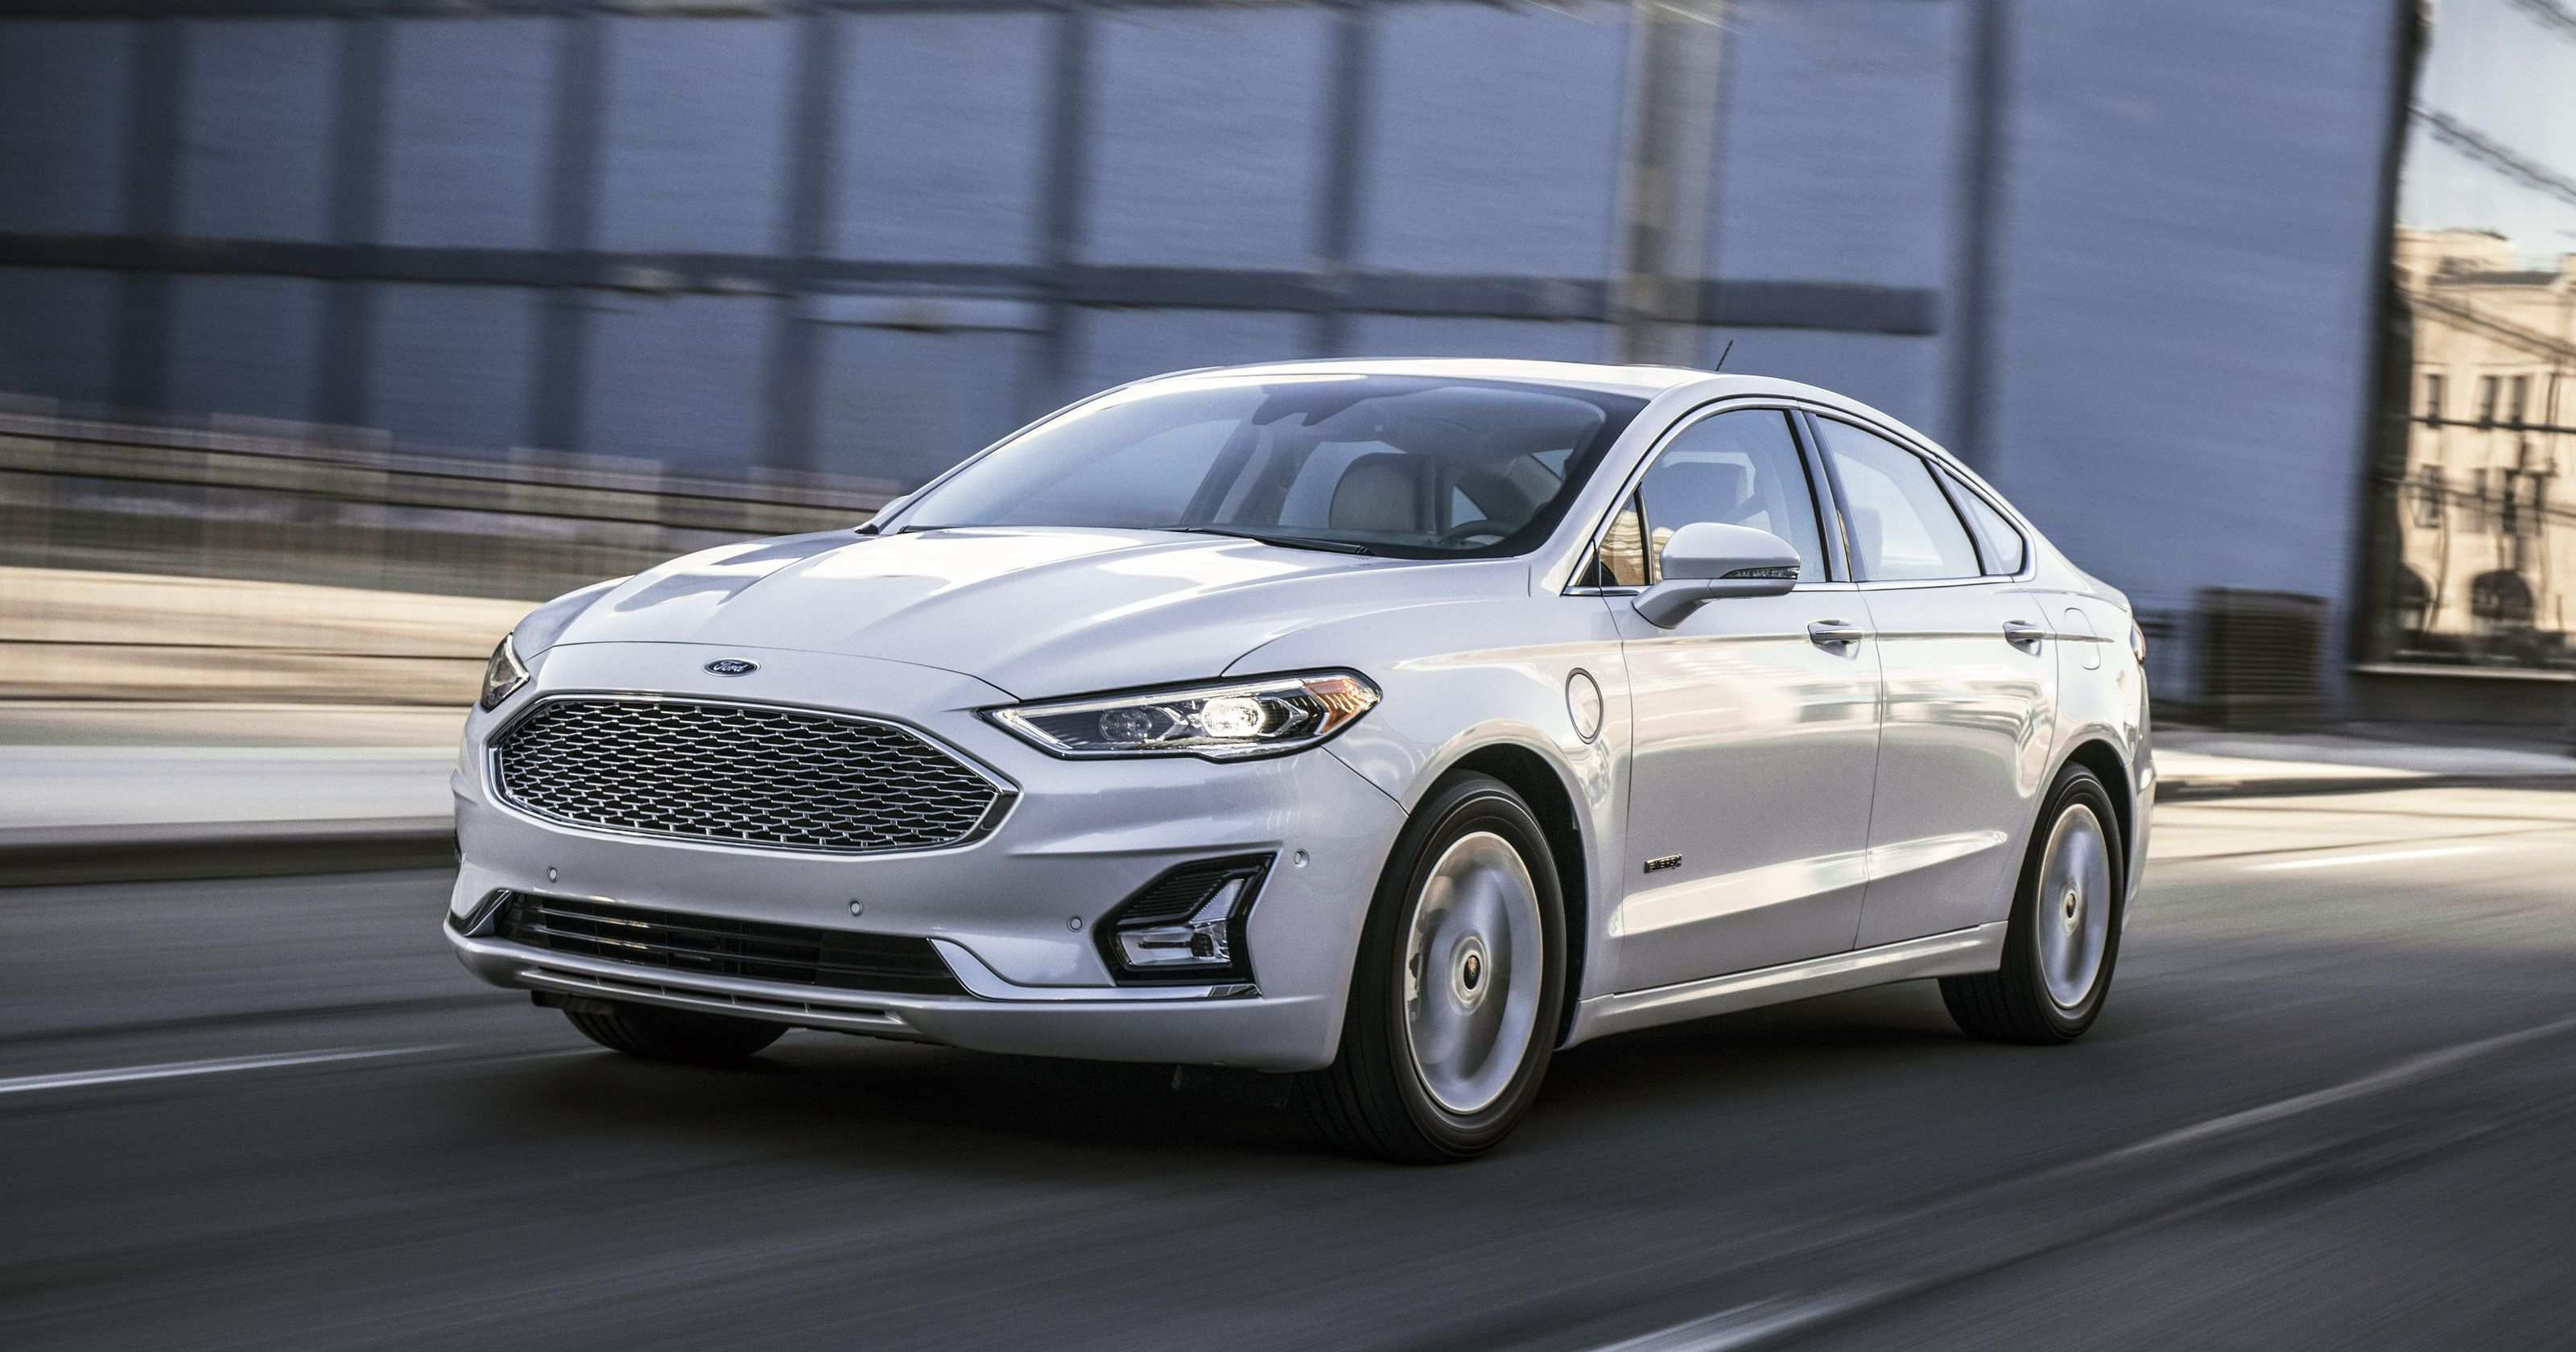 84 New 2020 Ford Fusion Energi Rumors with 2020 Ford Fusion Energi